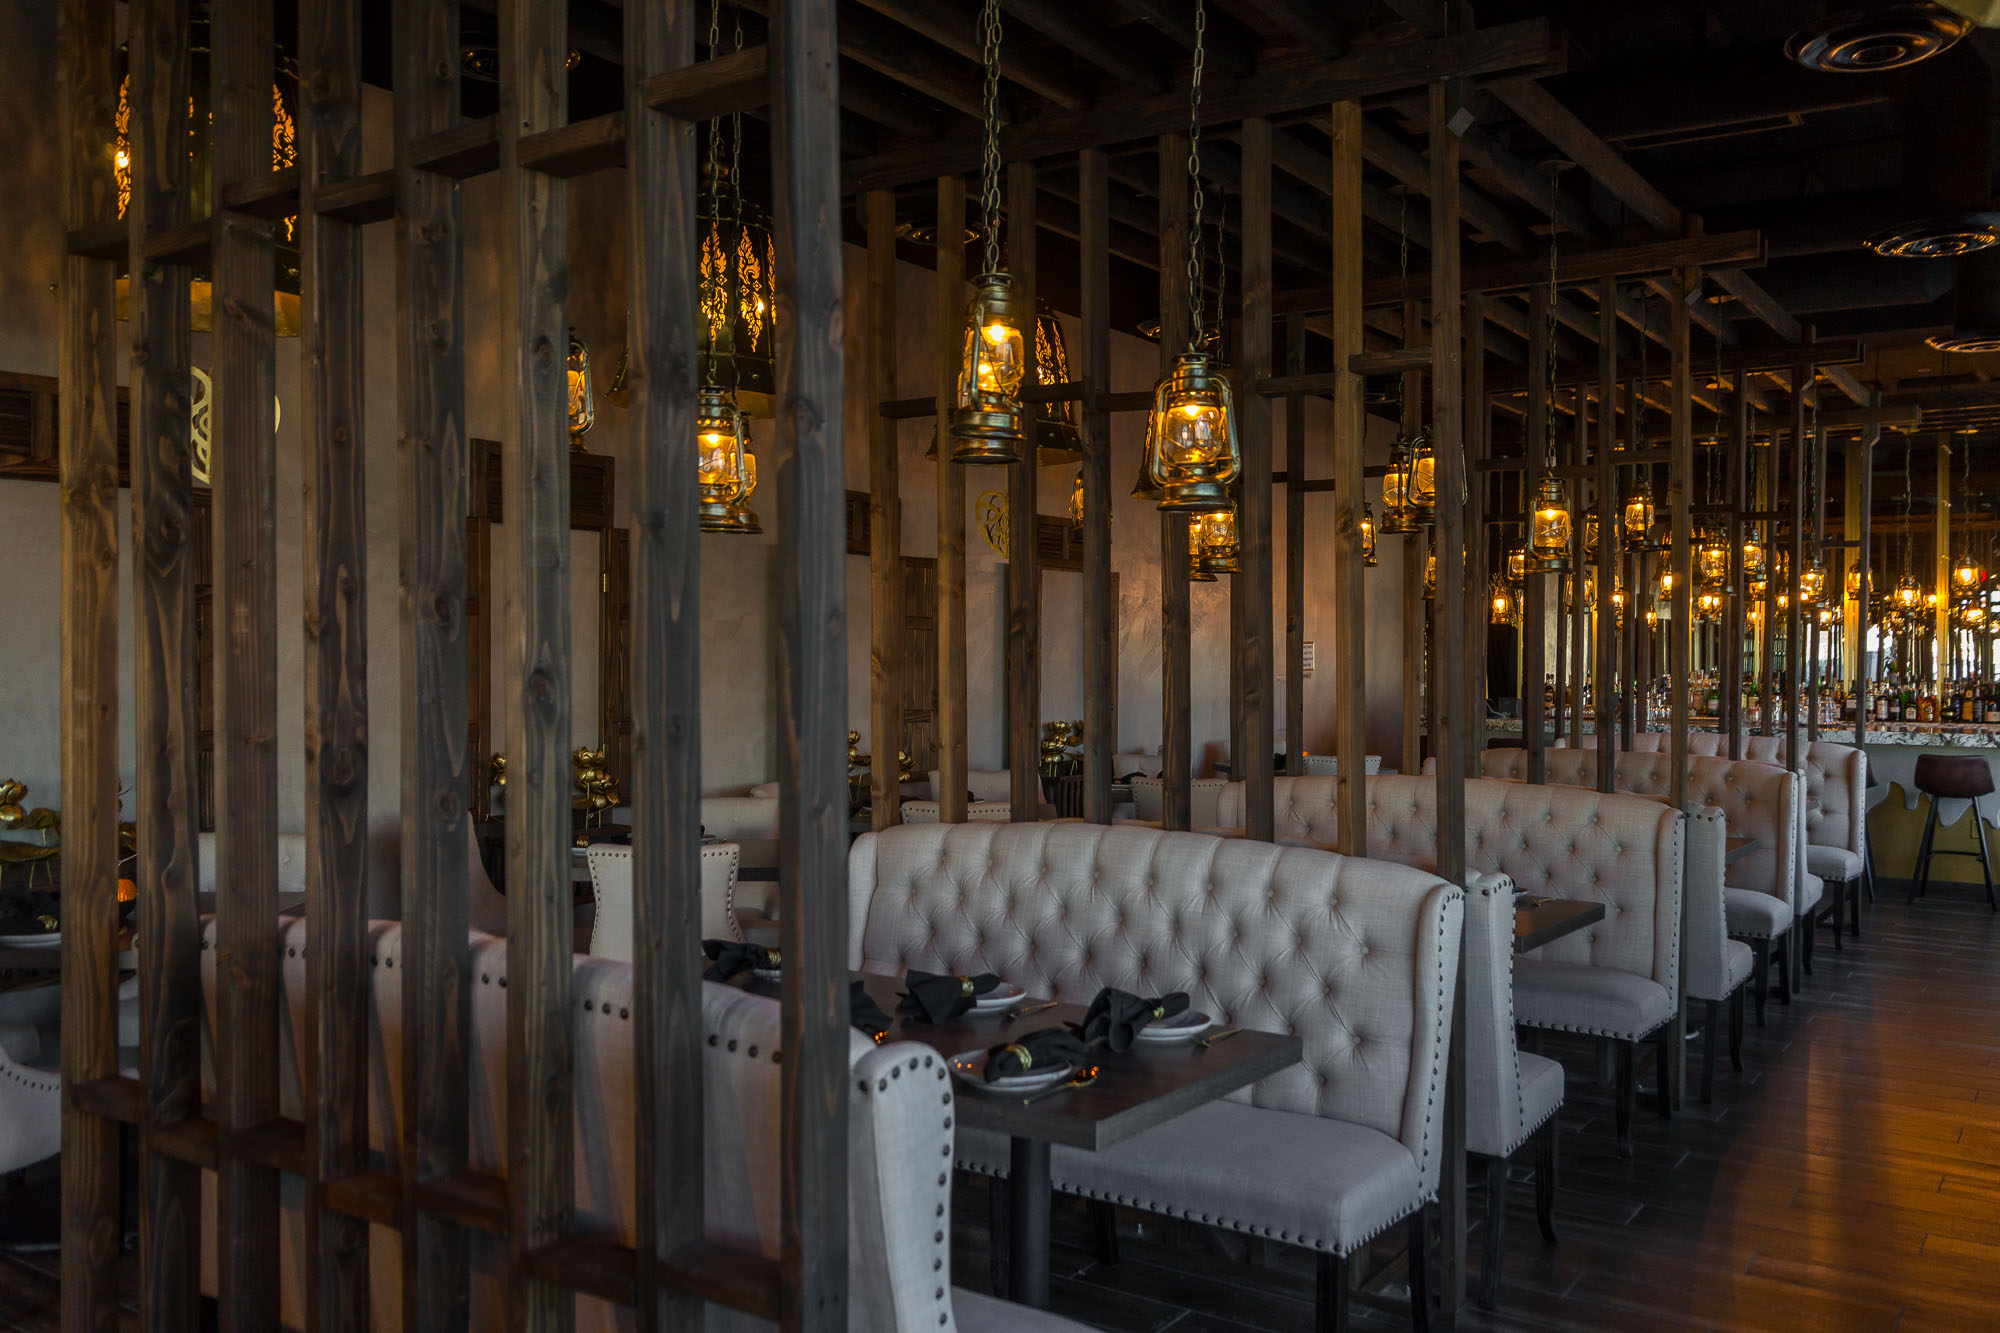 Bank Atcharawan's New Thai Restaurant Lamaii may be his sexiest yet